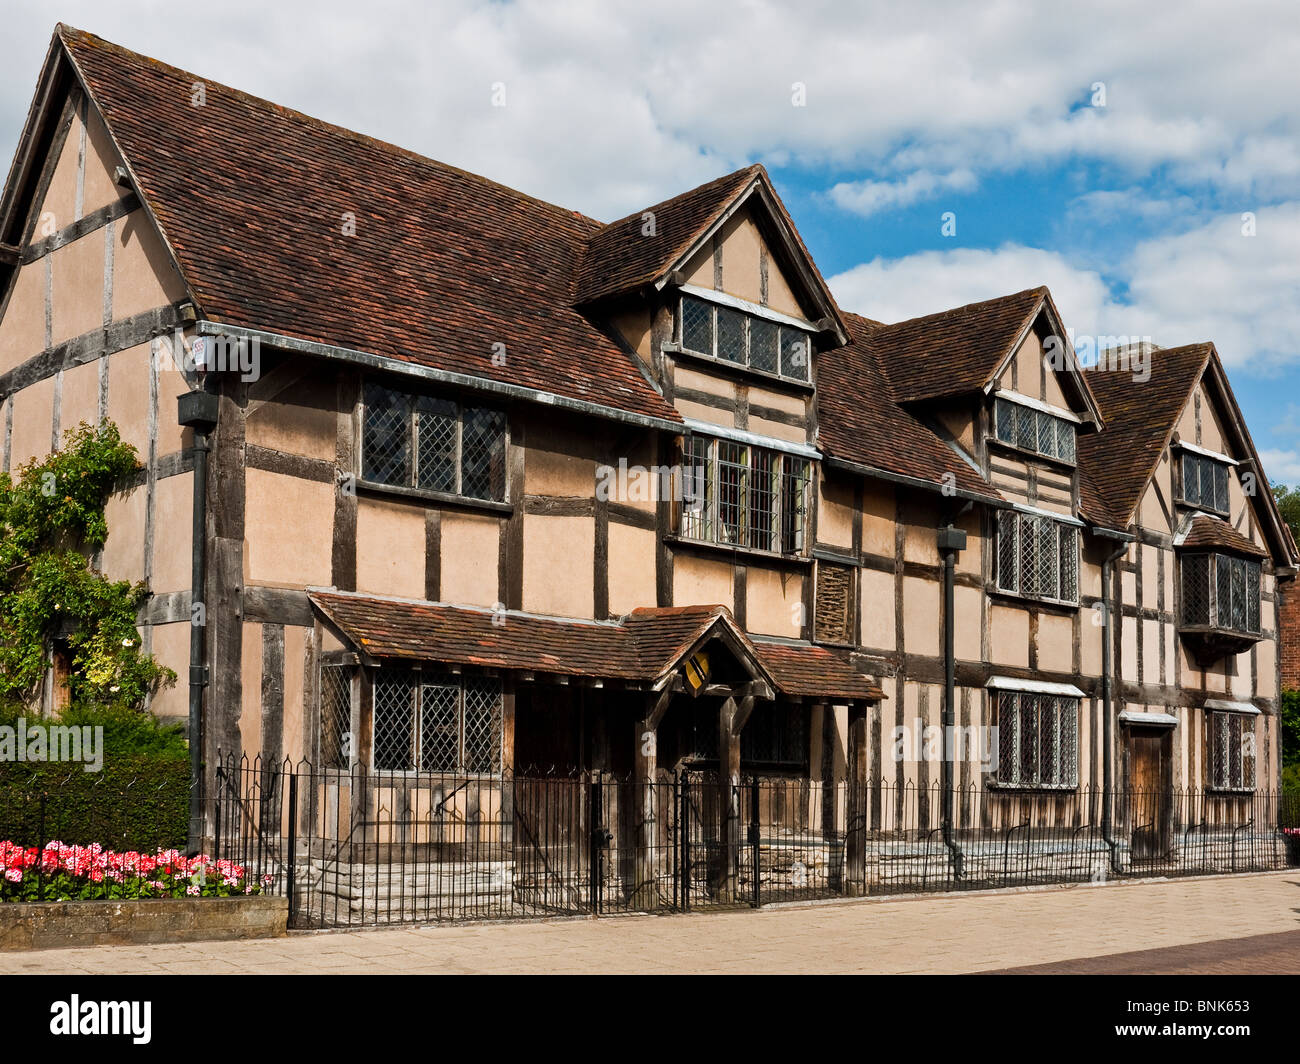 The House William Shakespeare Was Born In Henley Street Stratford Upon Avon